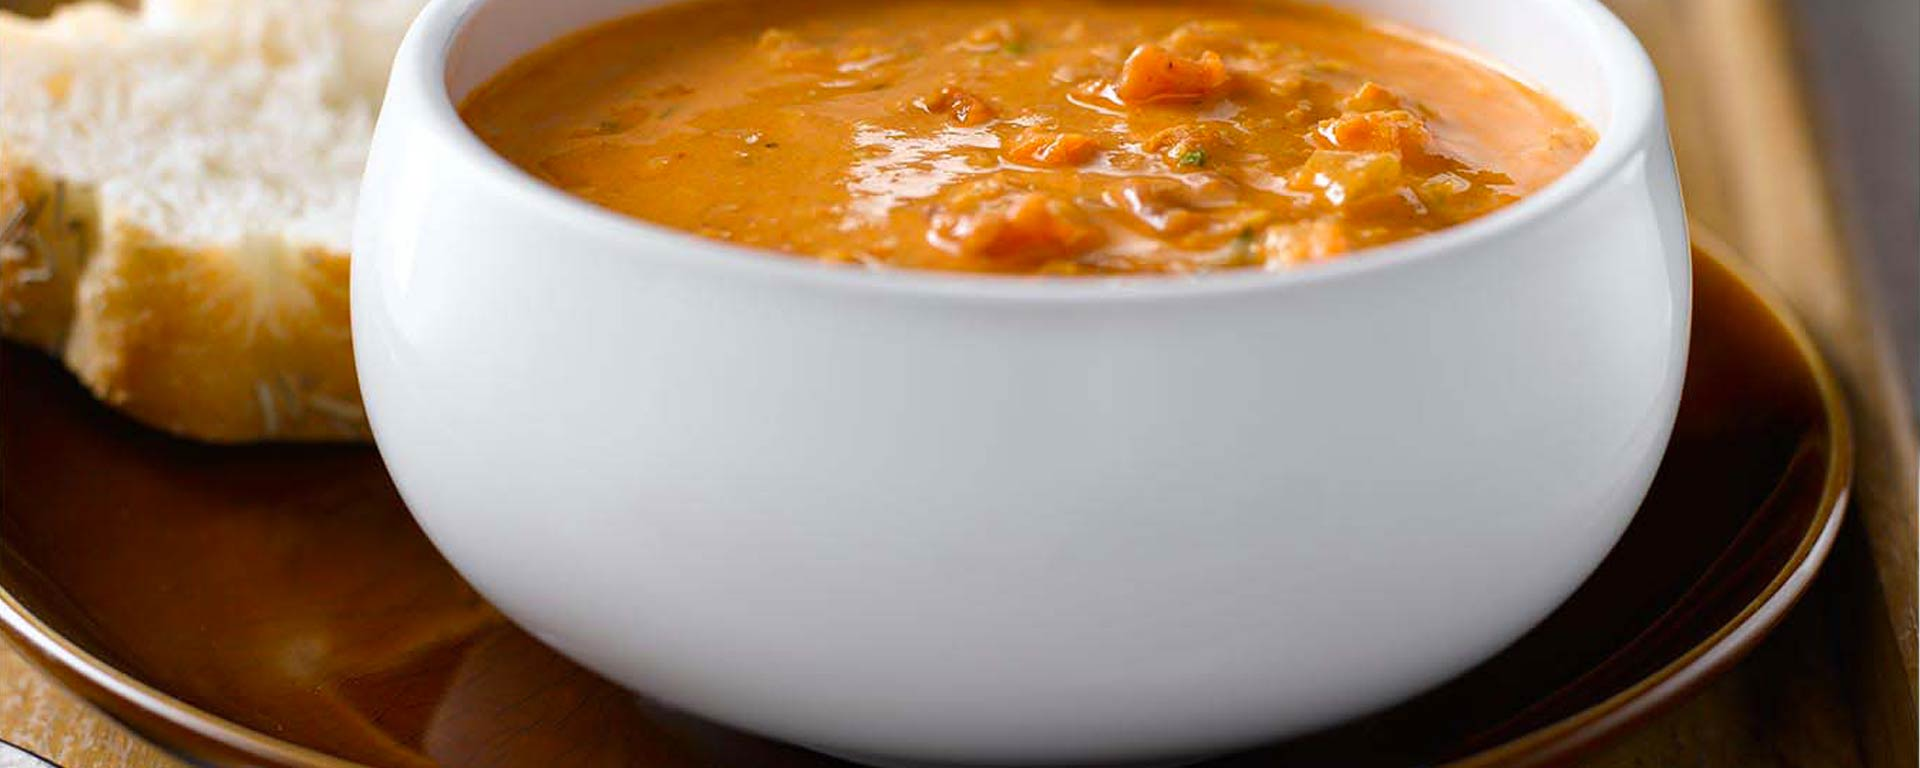 Photo for - Creamy Lentil and Cumin Soup